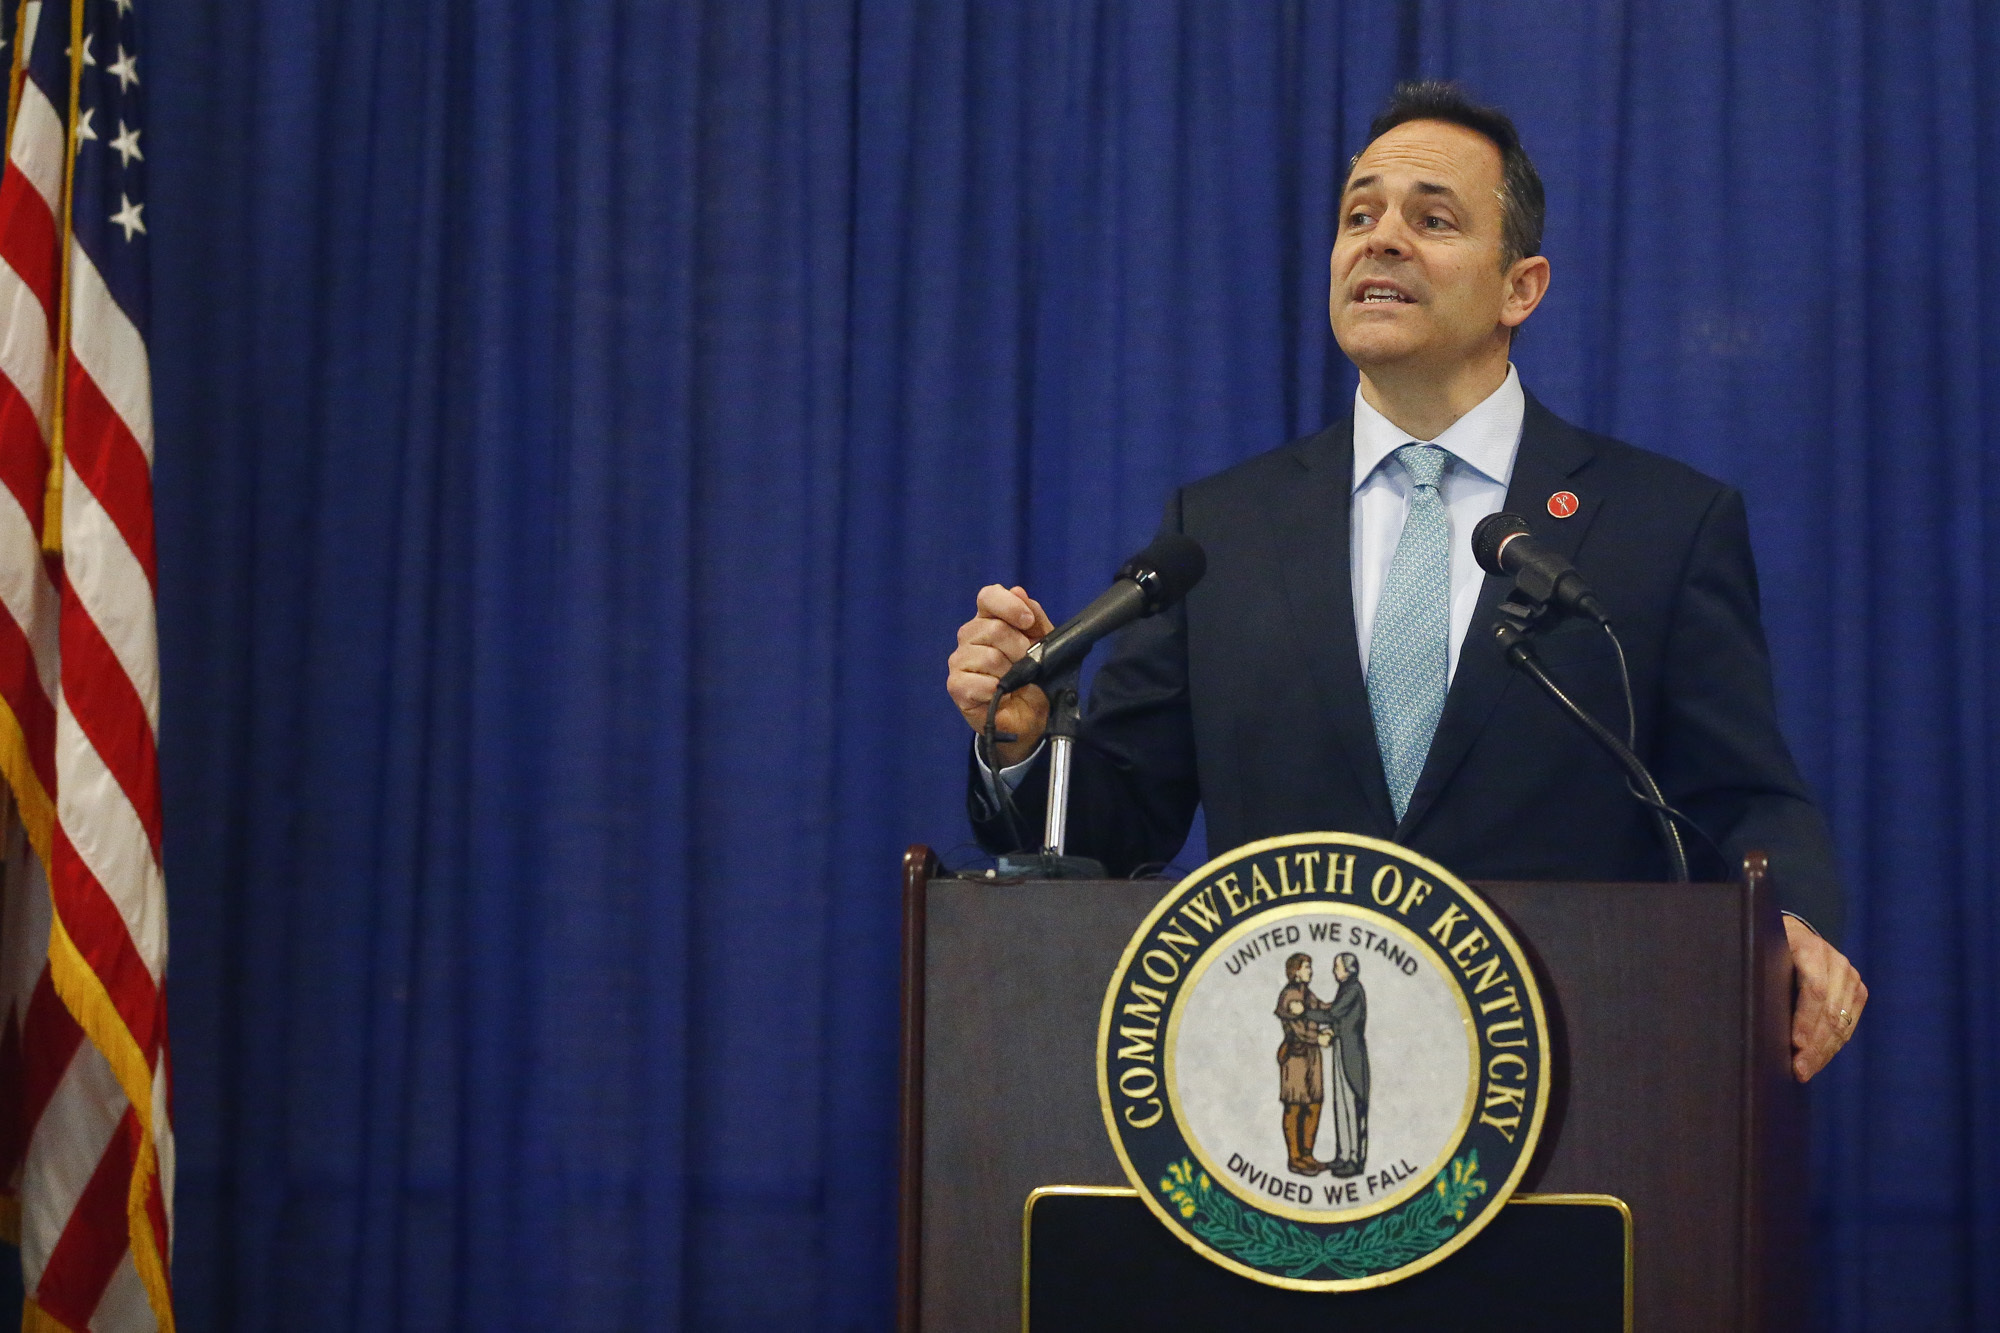 Kentucky Gov. Matt Bevin announces federal approval of Kentucky's Medicaid waiver in Frankfort, Ky on Jan. 12, 2018